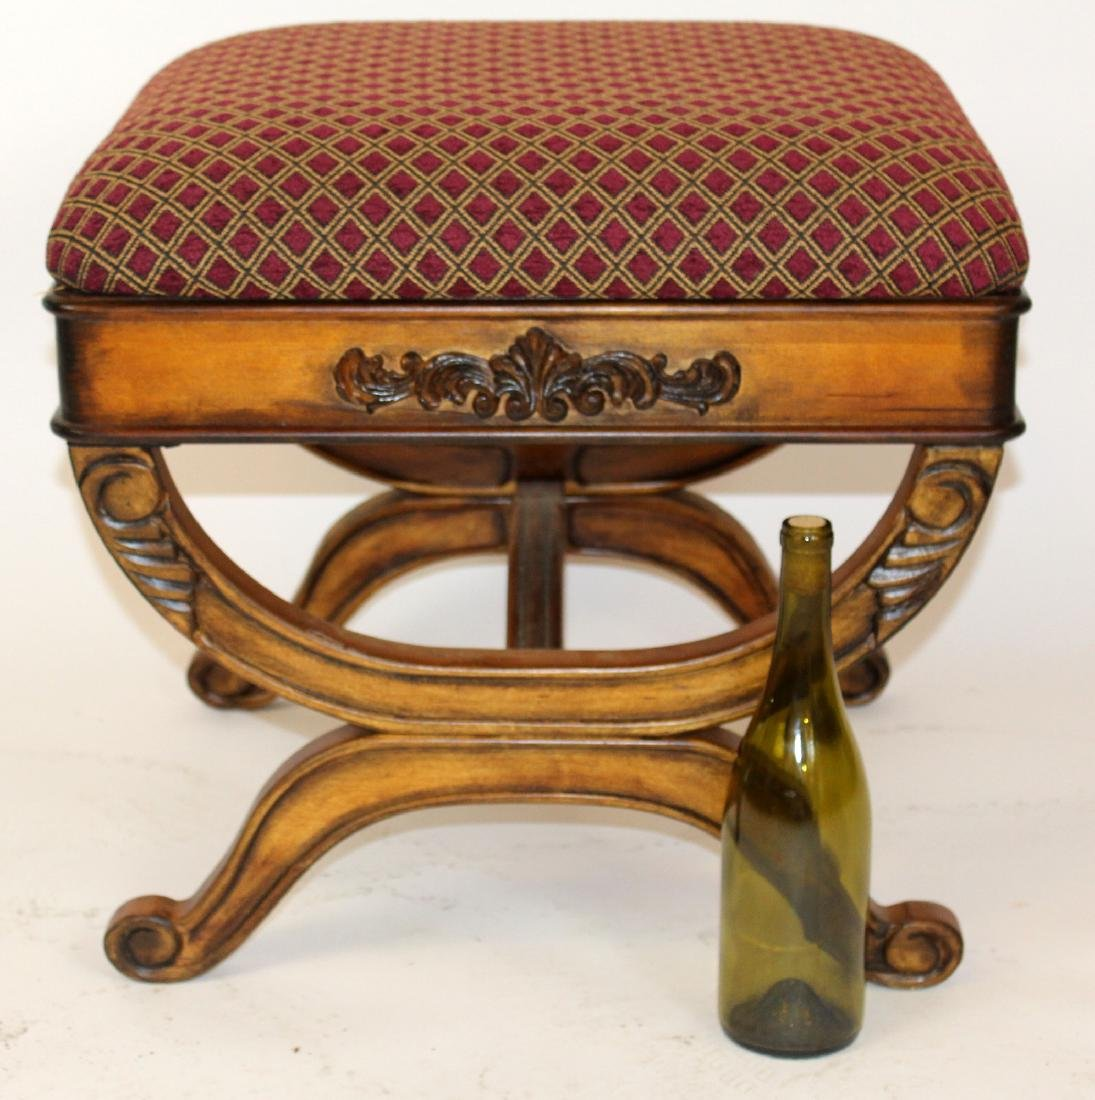 Upholstered ottoman with shaped legs - 4